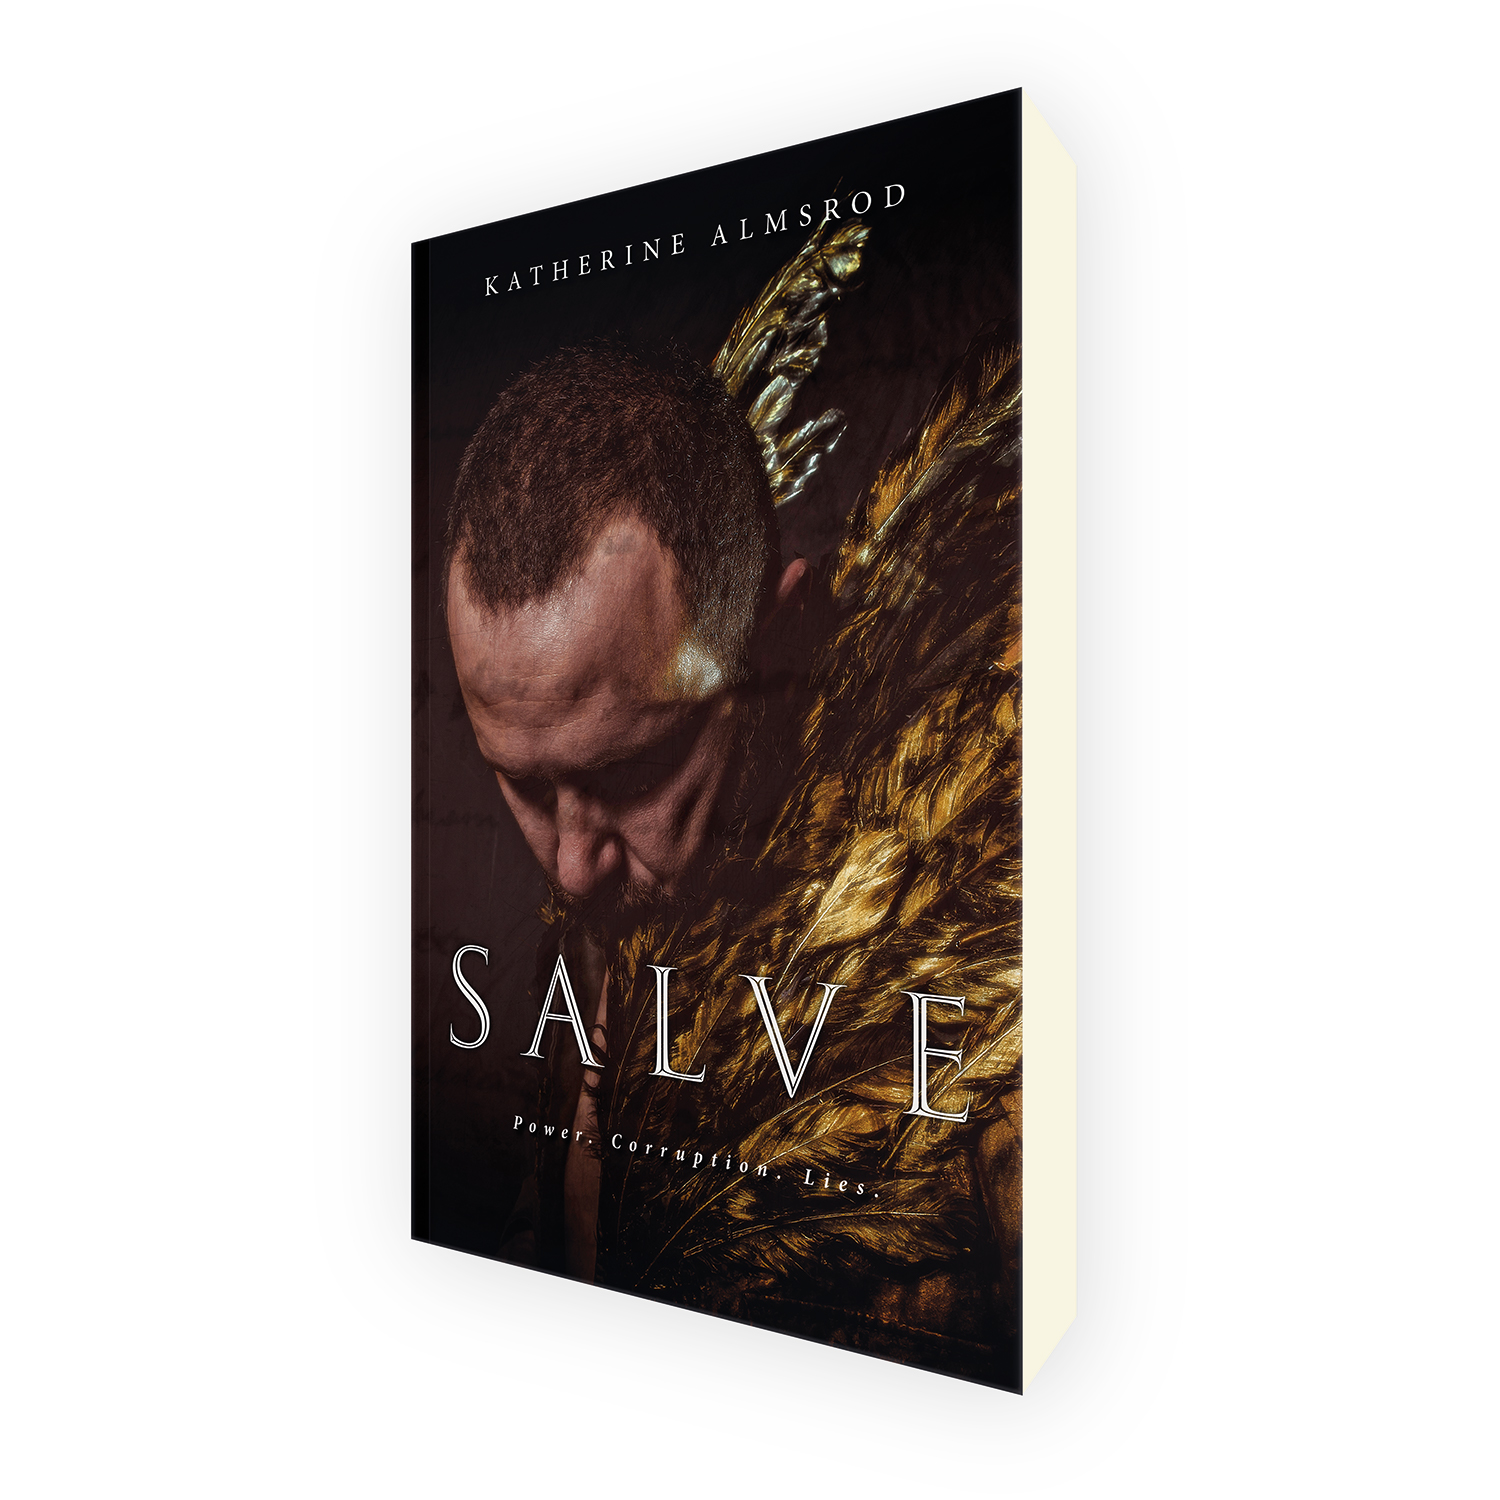 'Salve' is a bespoke cover design for a historical novel. The book cover was designed by Mark Thomas, of coverness.com. To find out more about my book design services, please visit www.coverness.com.